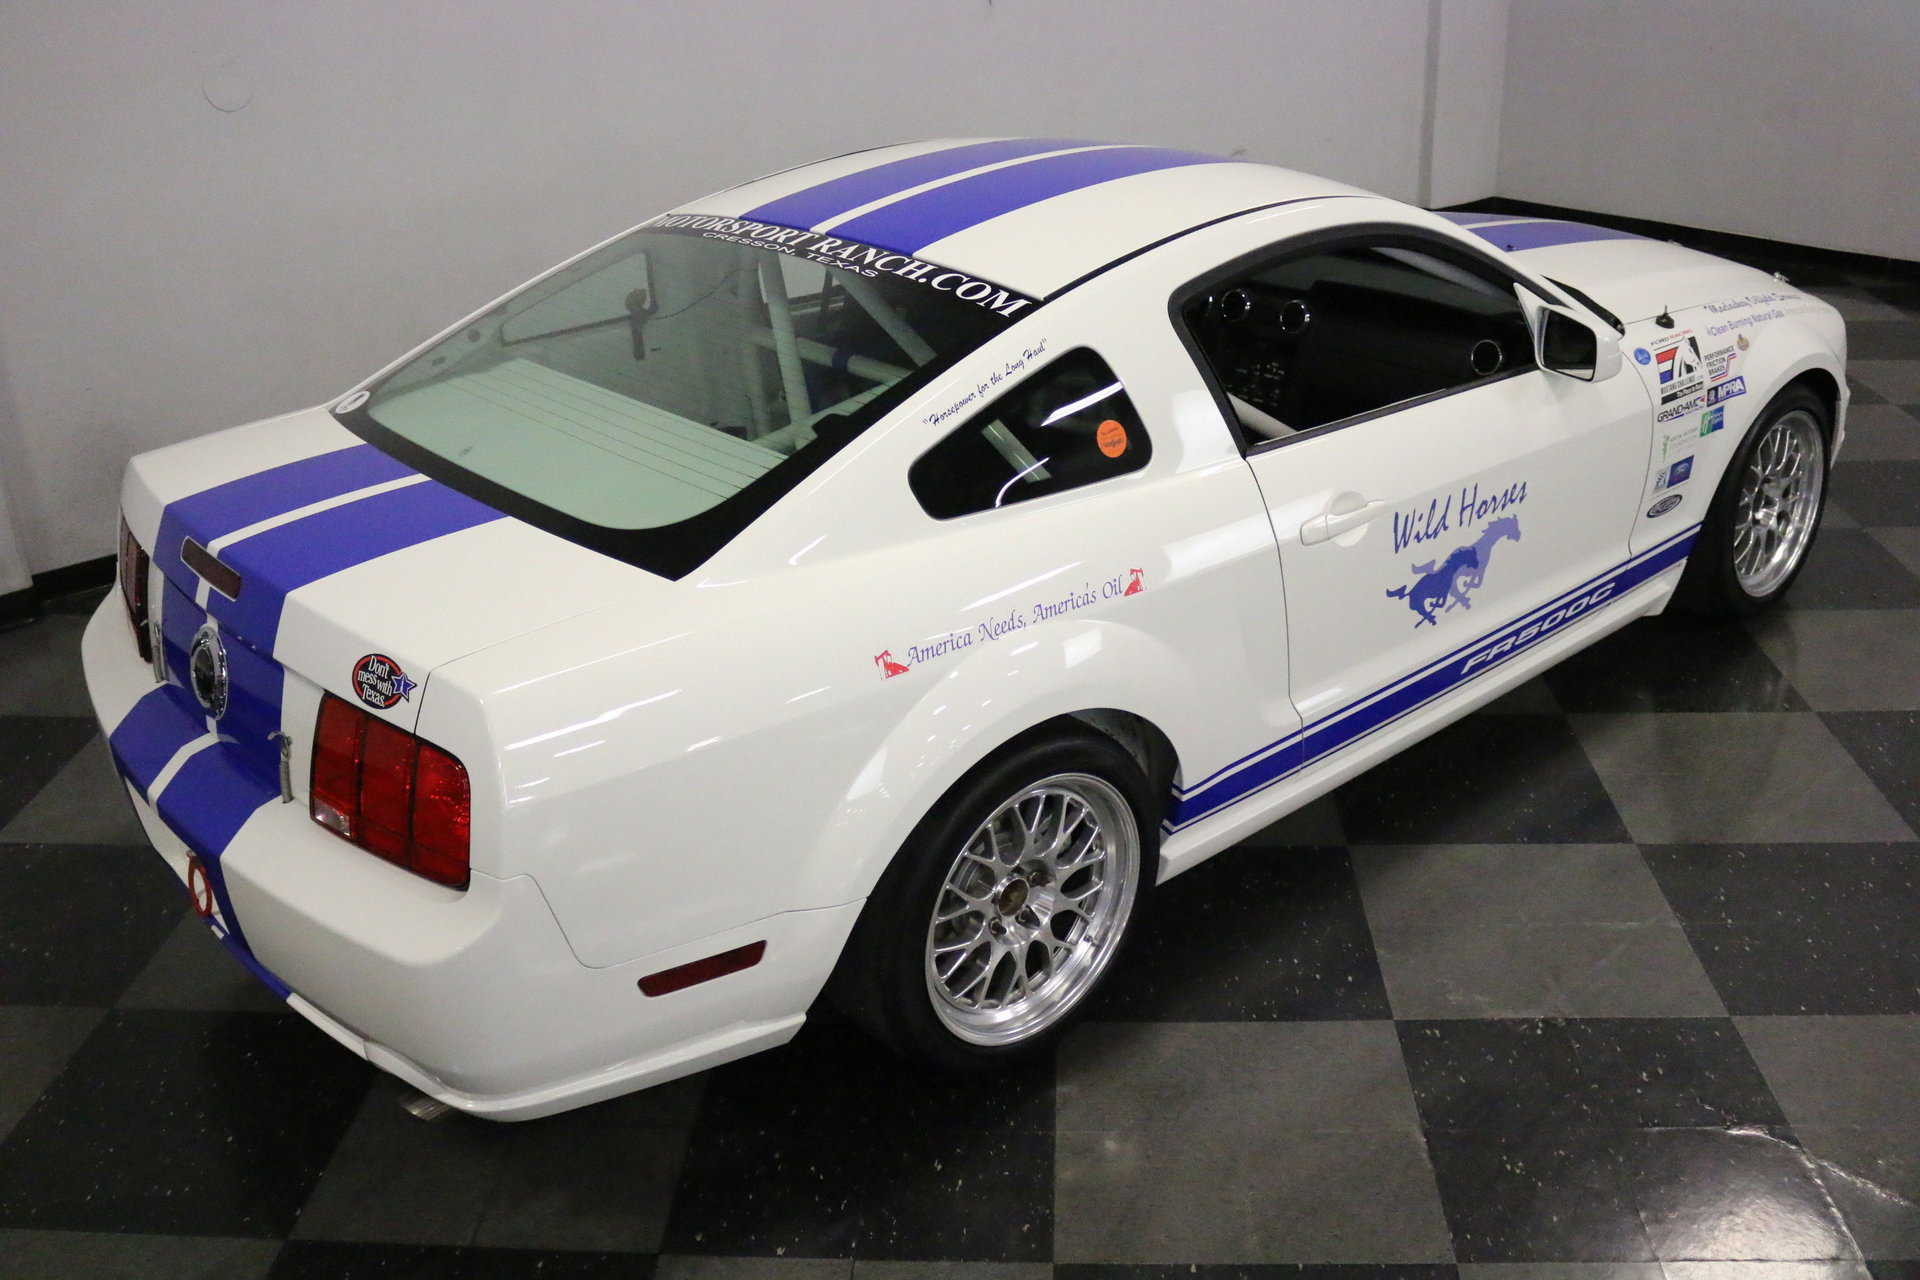 2008 Ford Mustang Streetside Classics The Nations Trusted Am Looking For A 1970 V8 Wiring Harness View 360